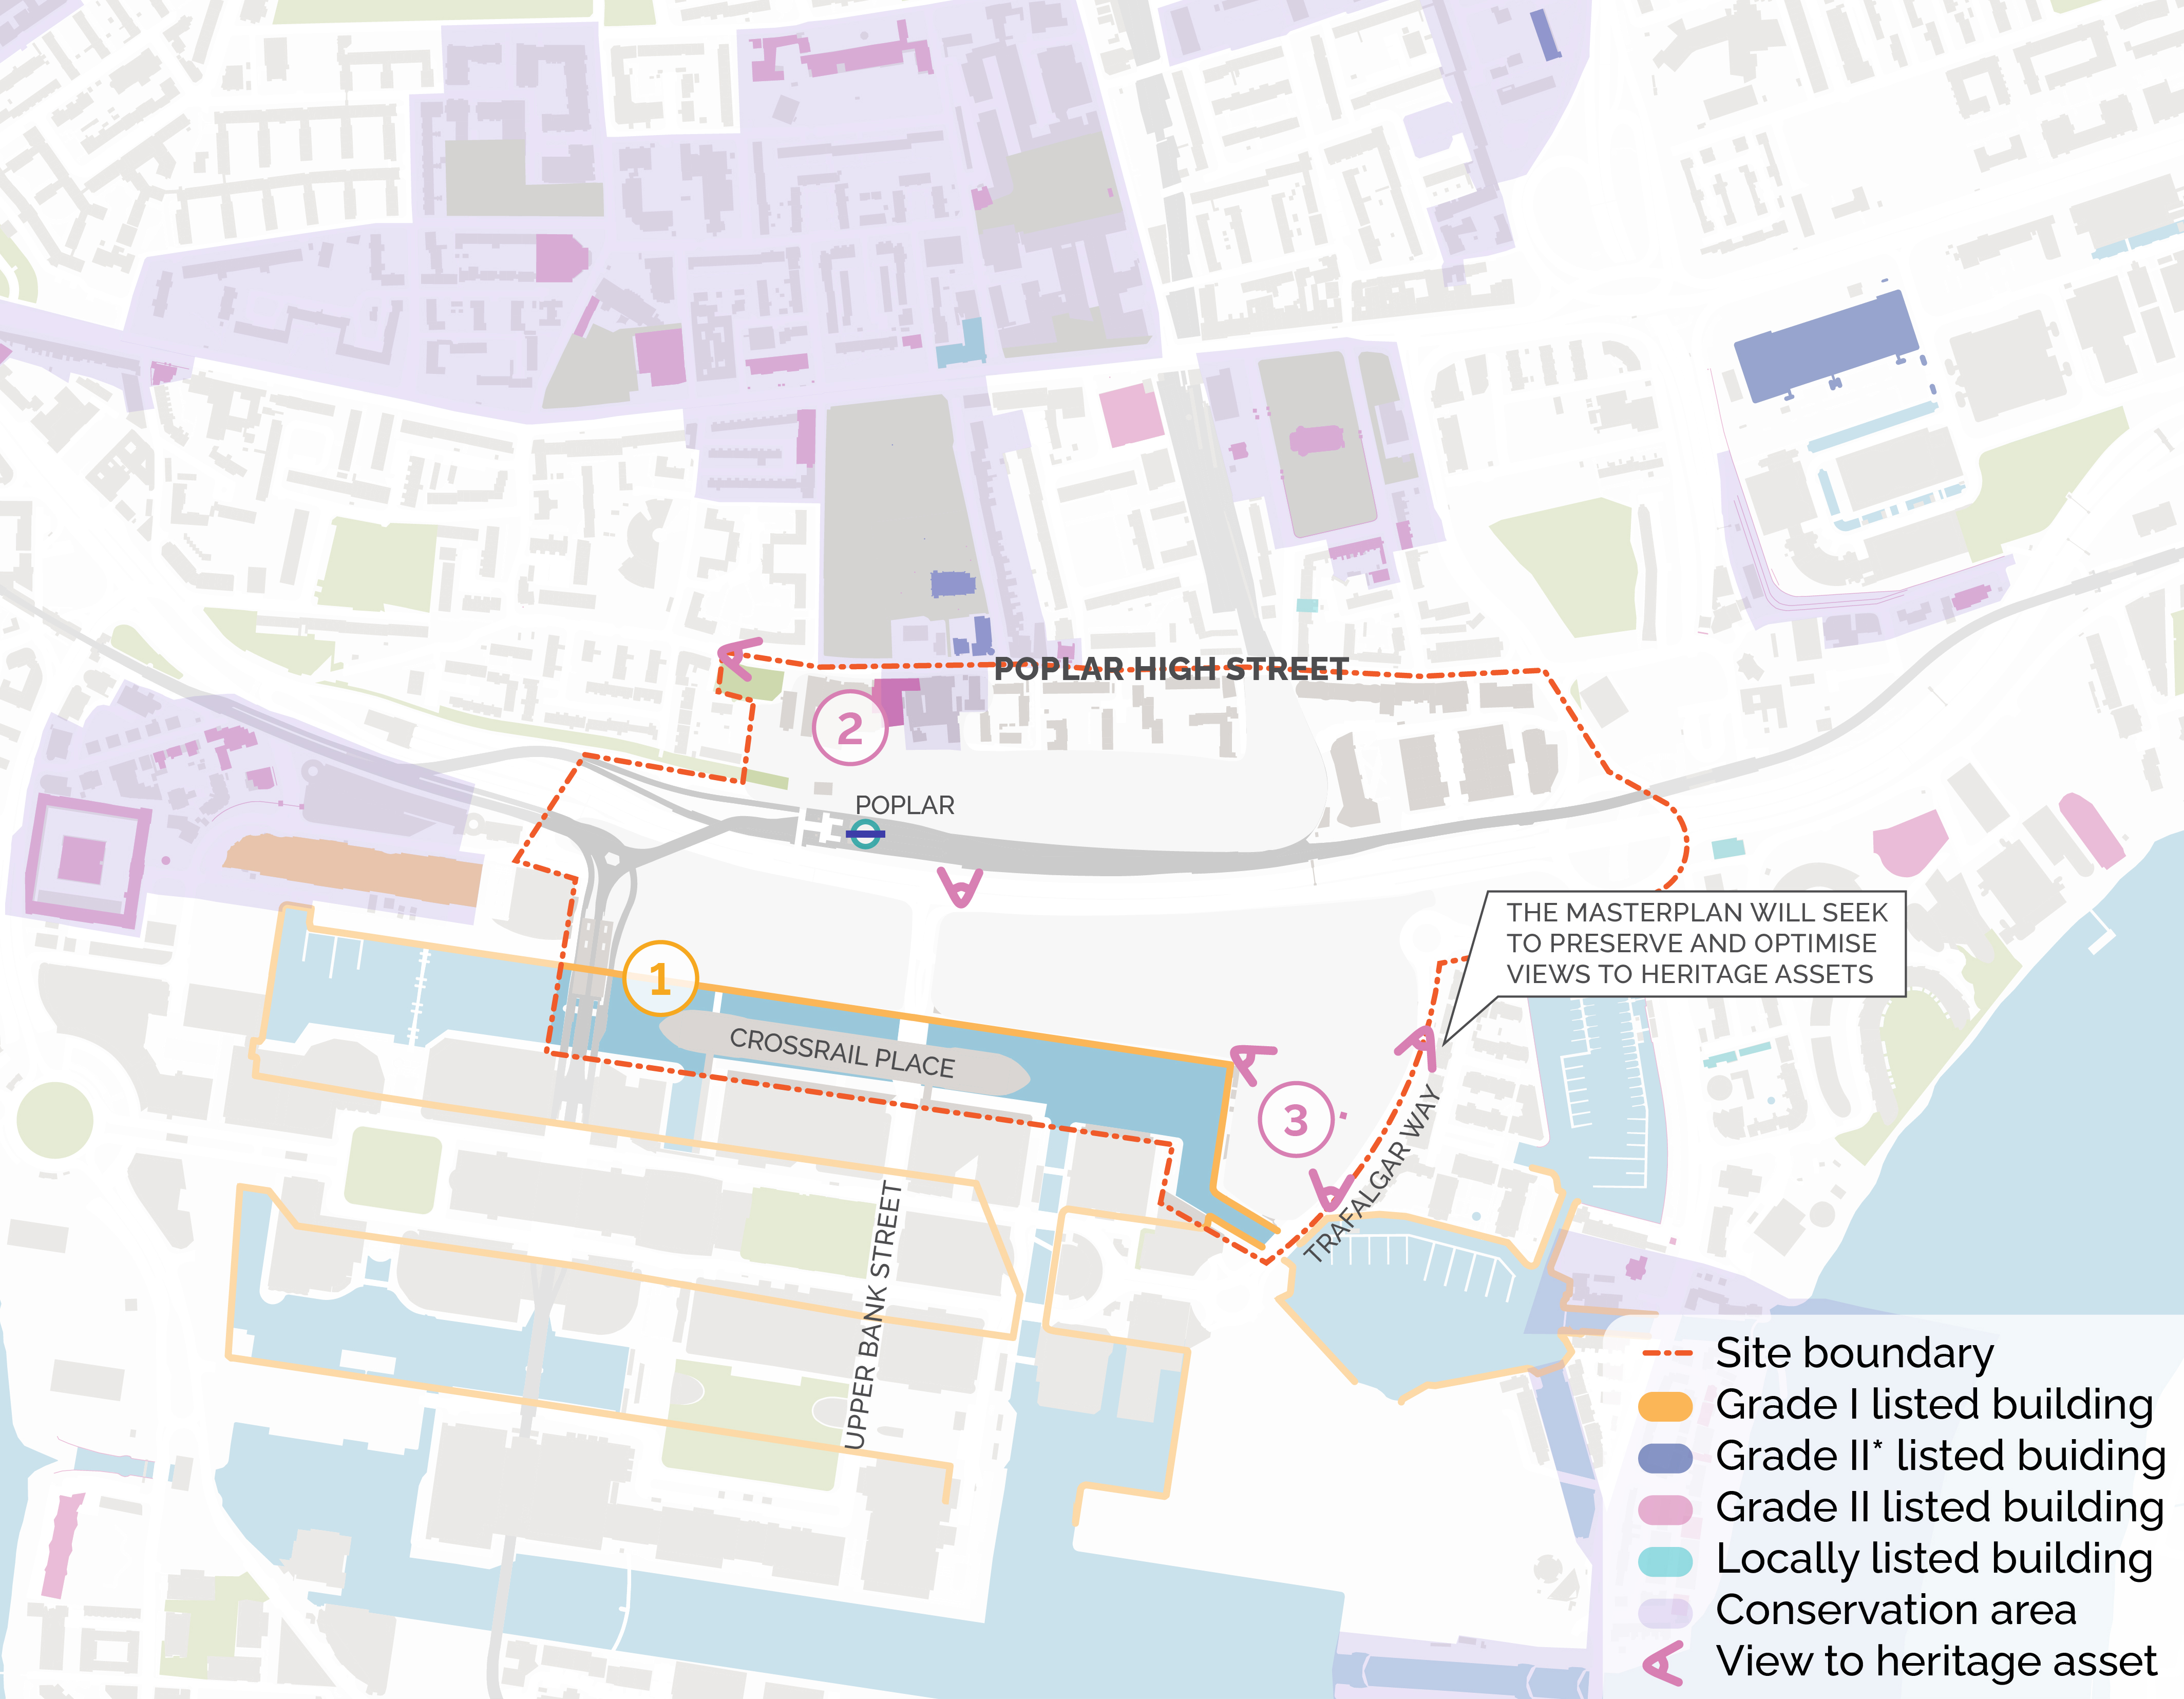 Existing heritage assets map